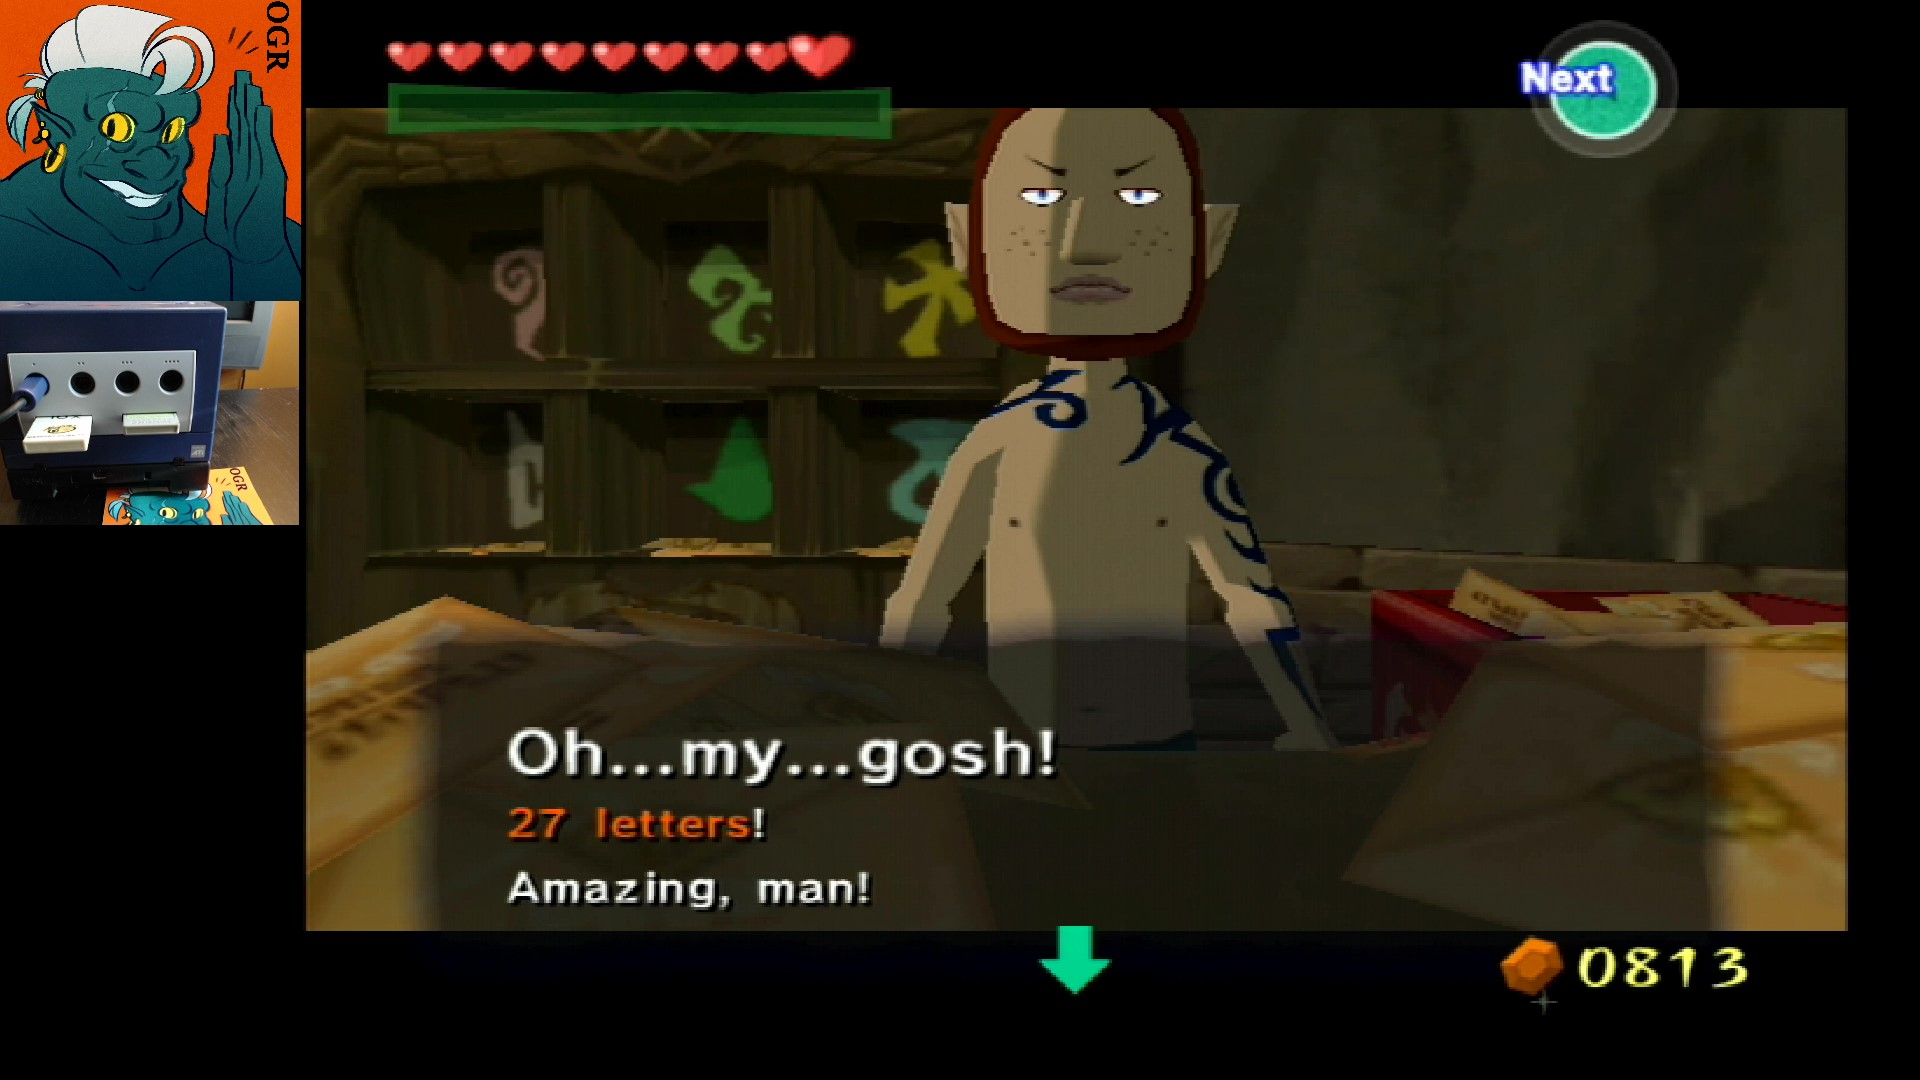 AwesomeOgre: Legend of Zelda: Wind Waker [Letter